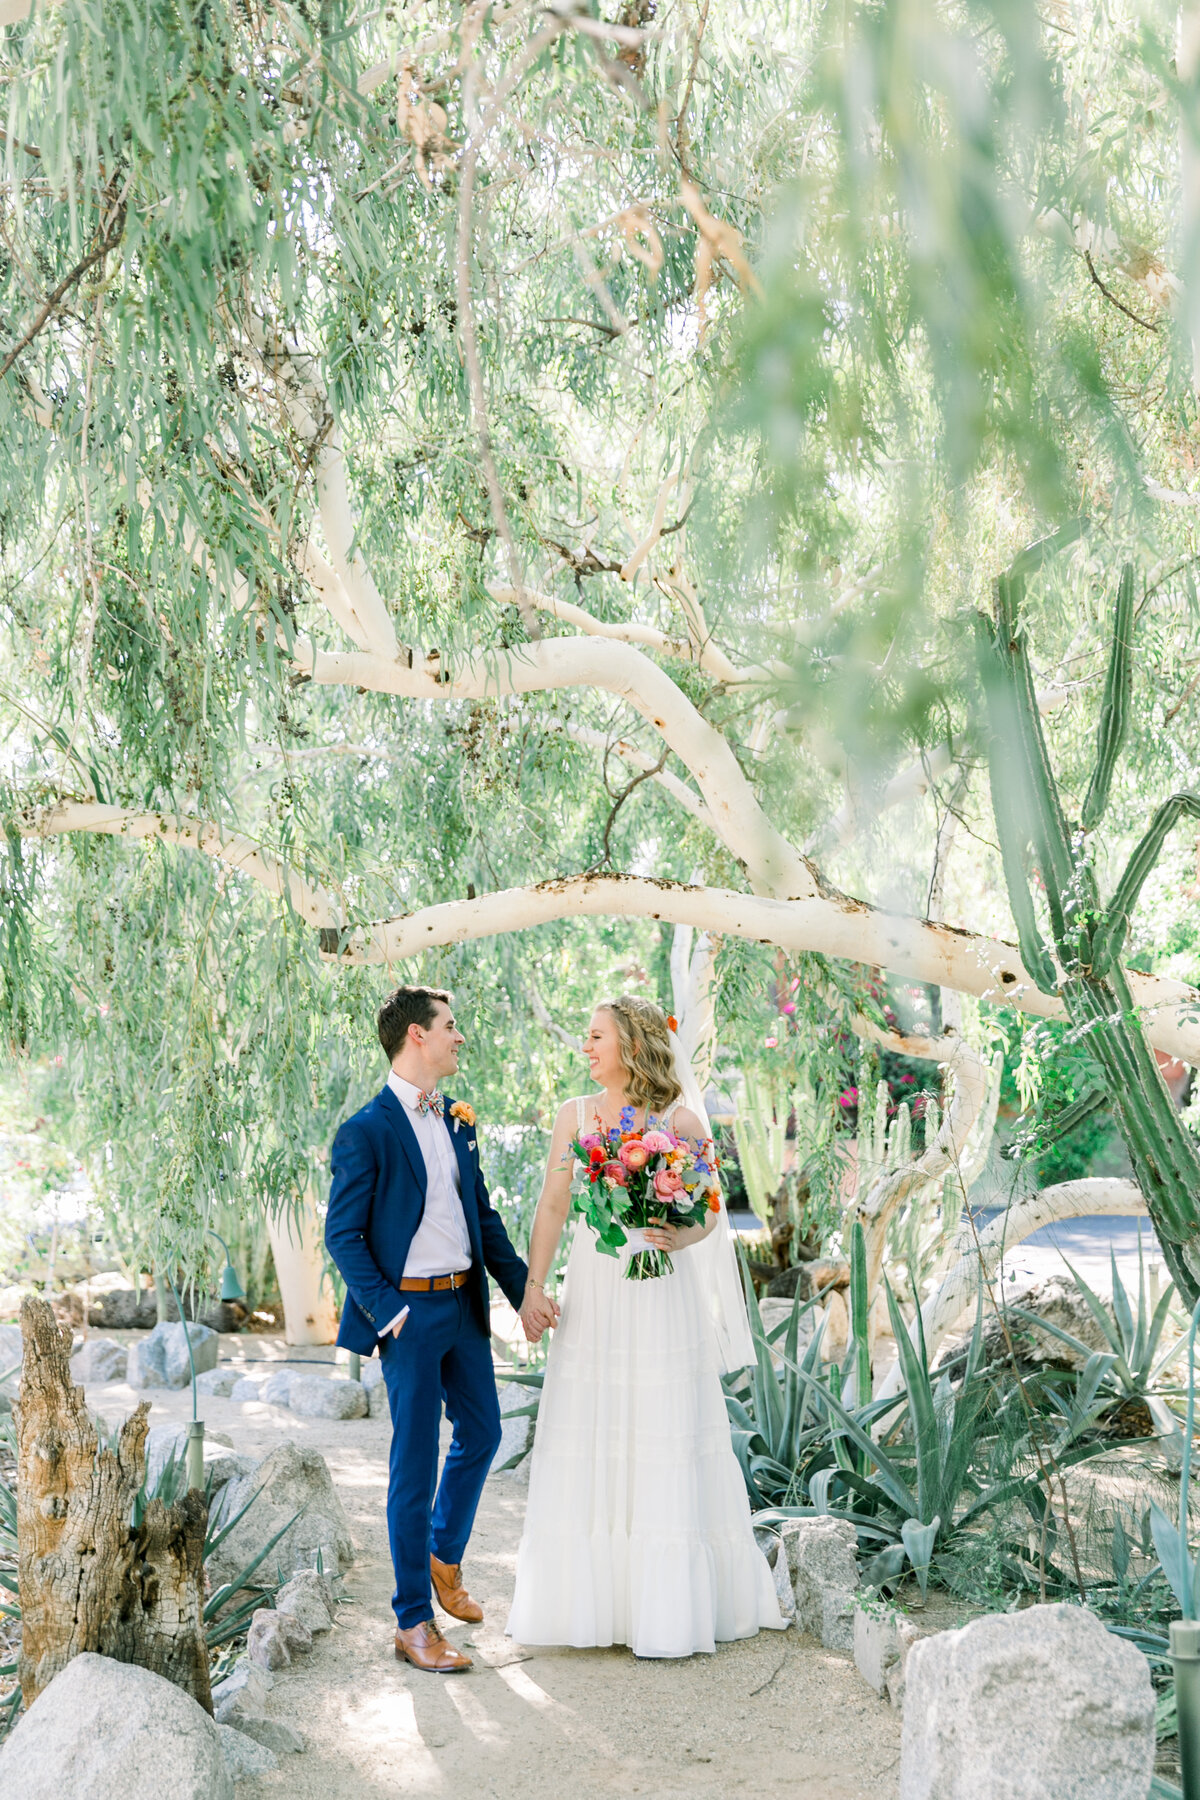 Karlie Colleen Photography - BooJum Venue - Phoenix Arizona - Zack & Chelsea-136